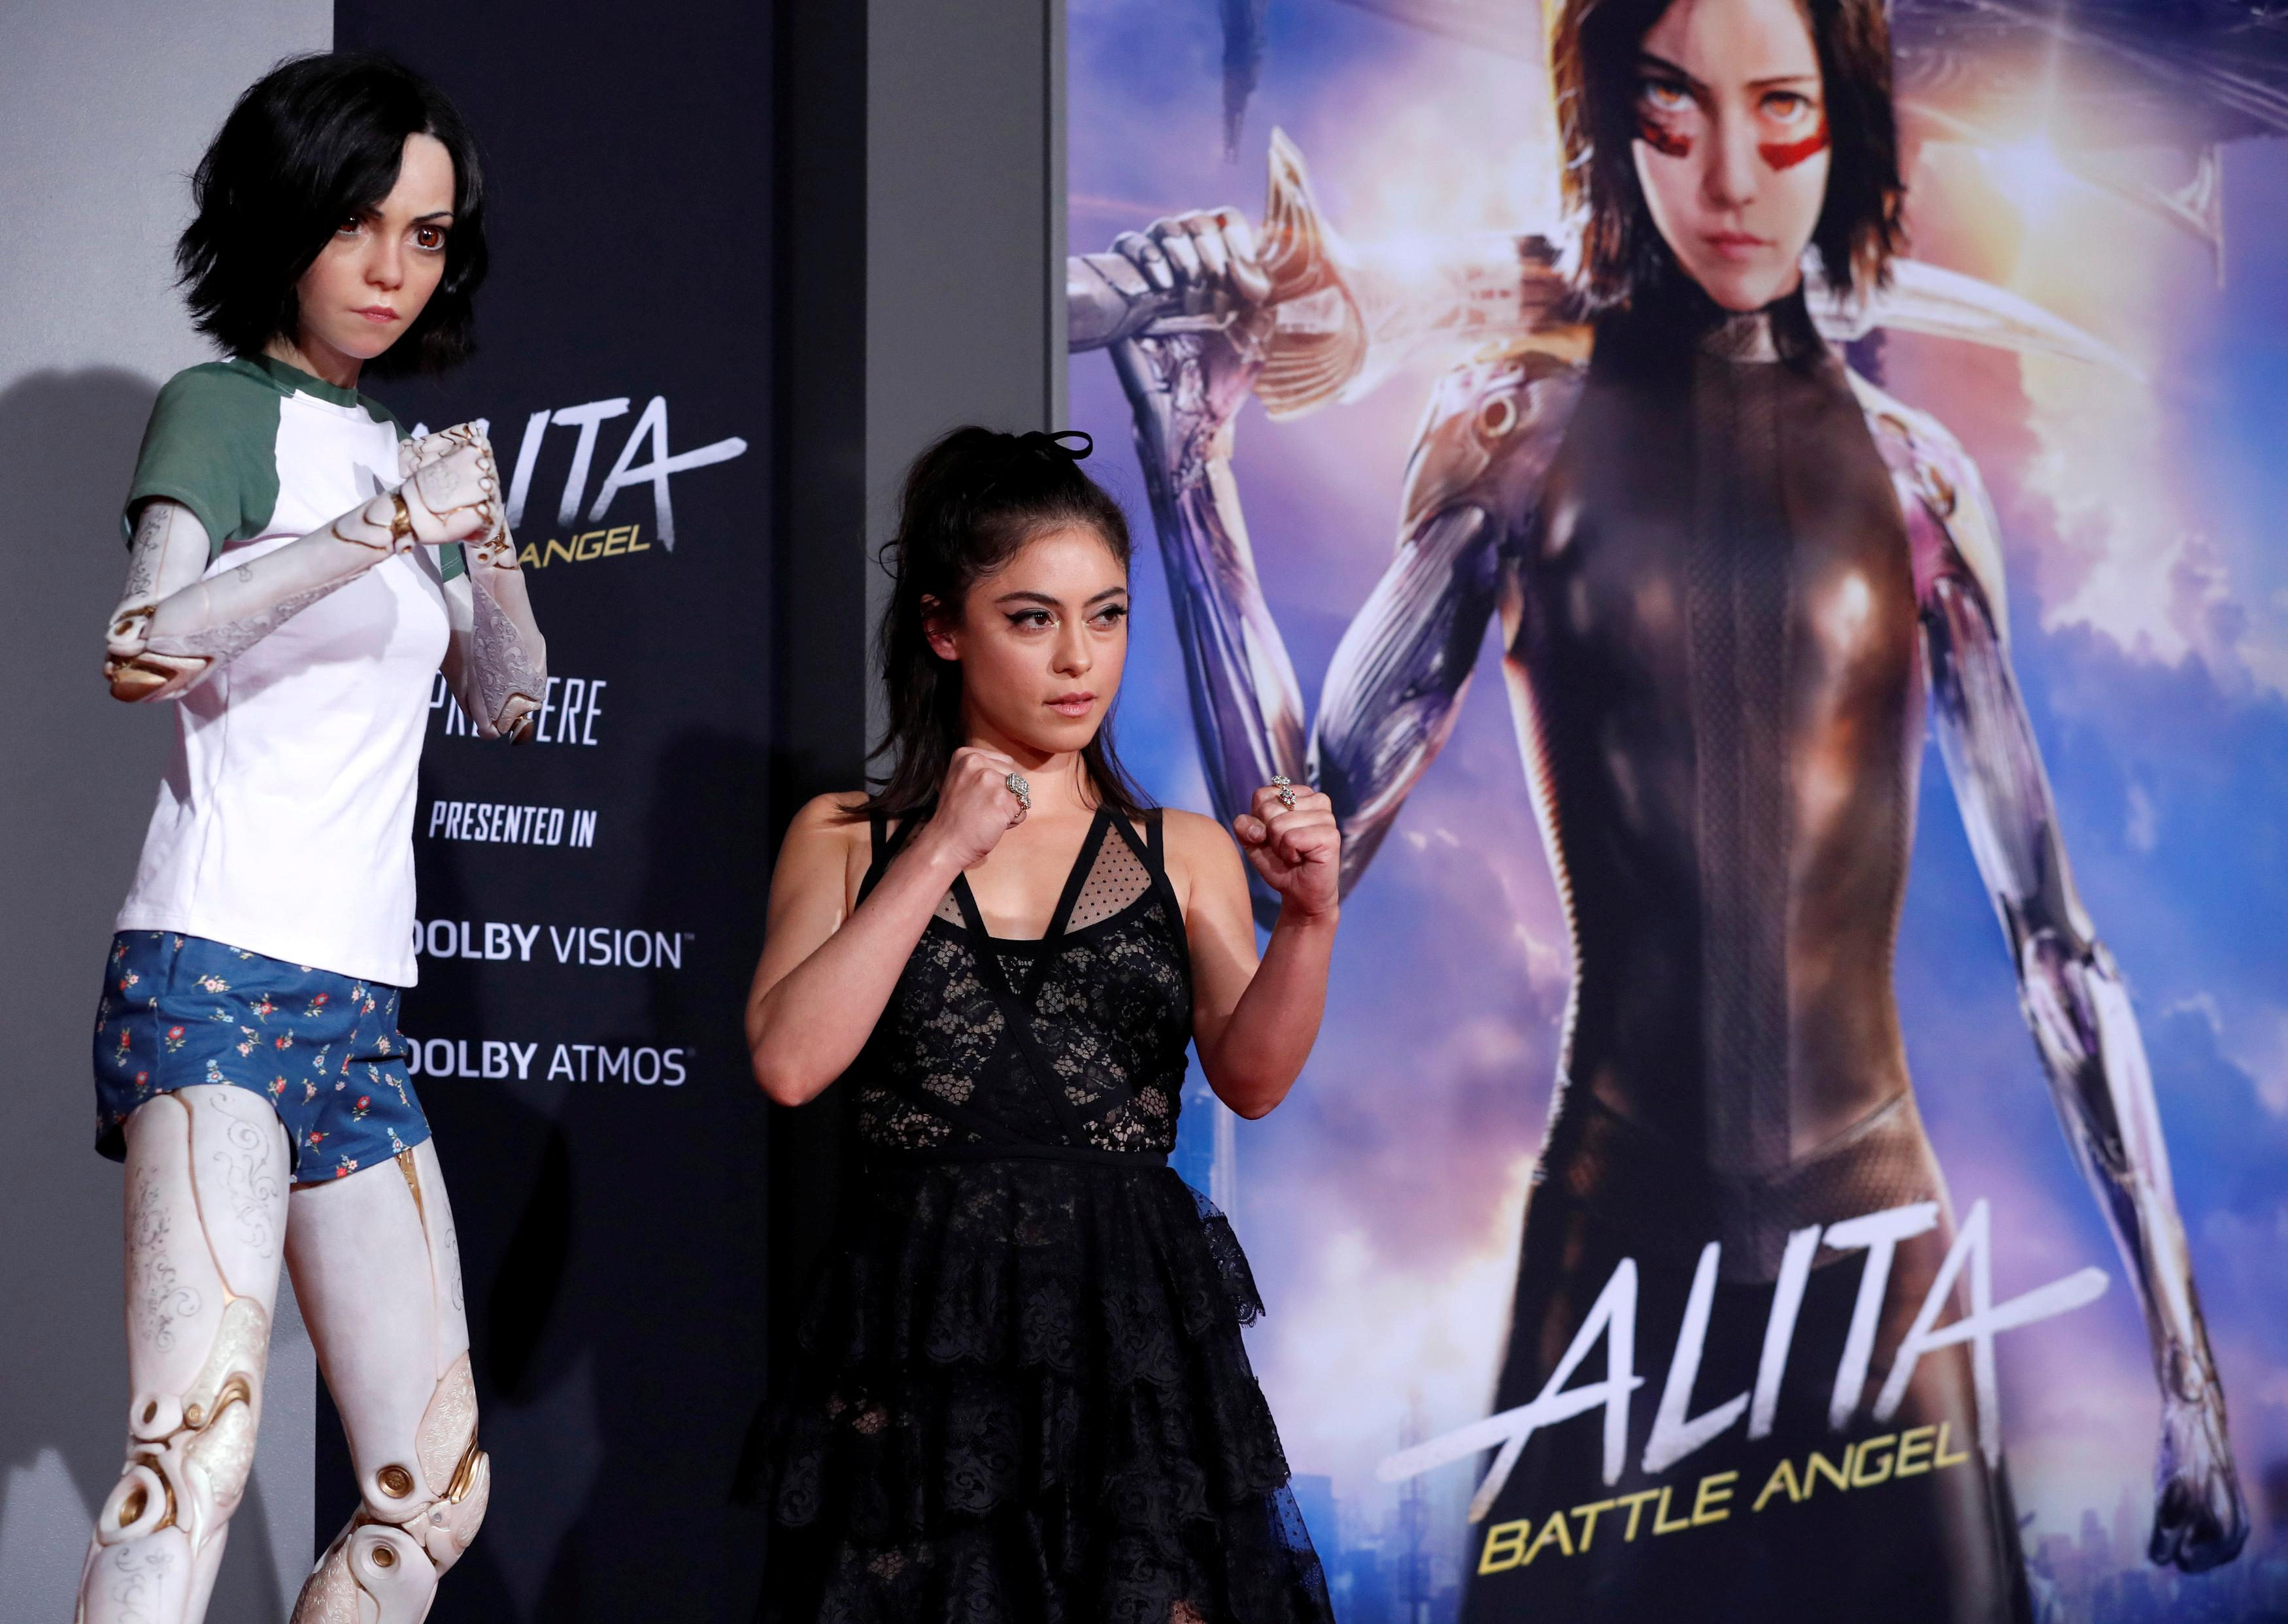 ALITA BATTLE ANGEL 2: RELEASE DATE, CAST, TRAILER AND LATEST ...